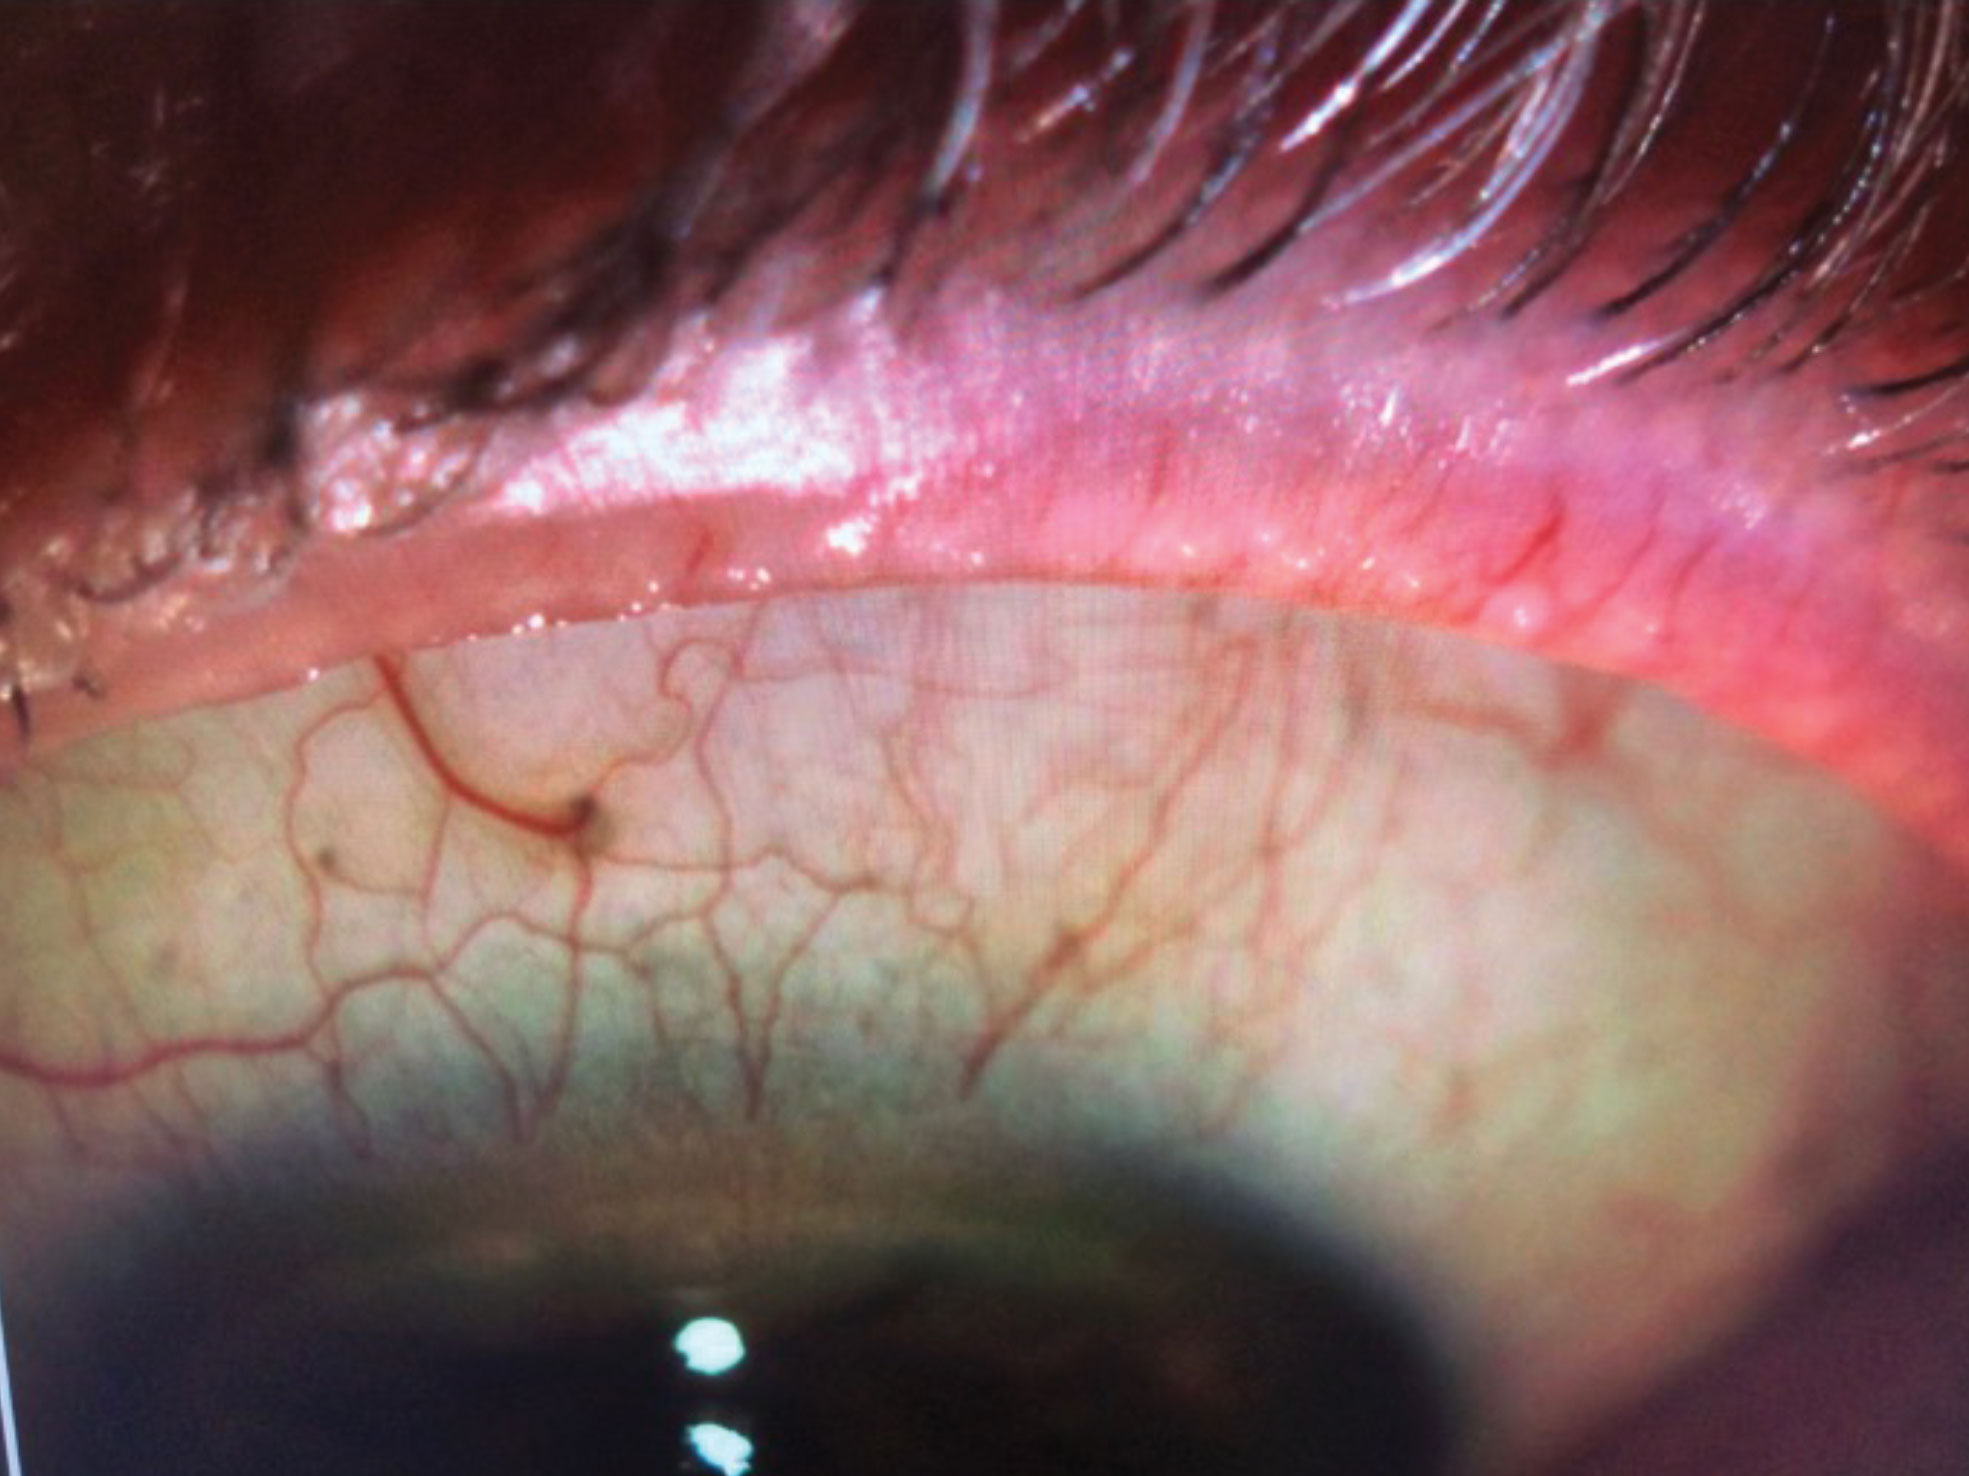 IPL can help remove telangiectasia in the eyelid margins of MGD patients.